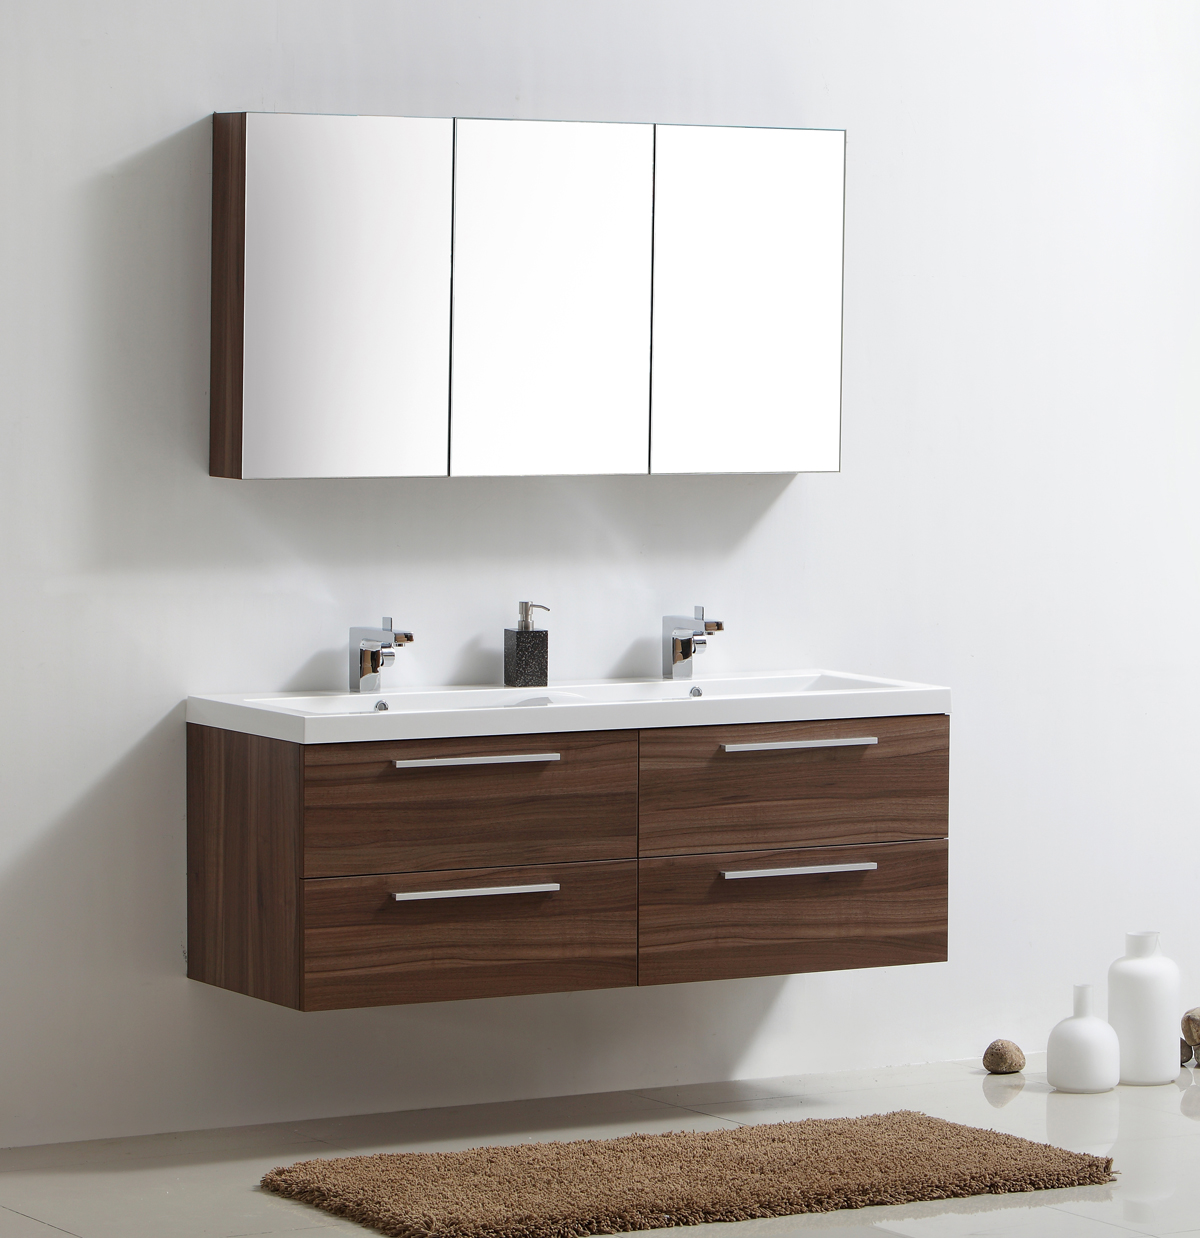 meuble de salle de bain noix armoire de toilette 3. Black Bedroom Furniture Sets. Home Design Ideas